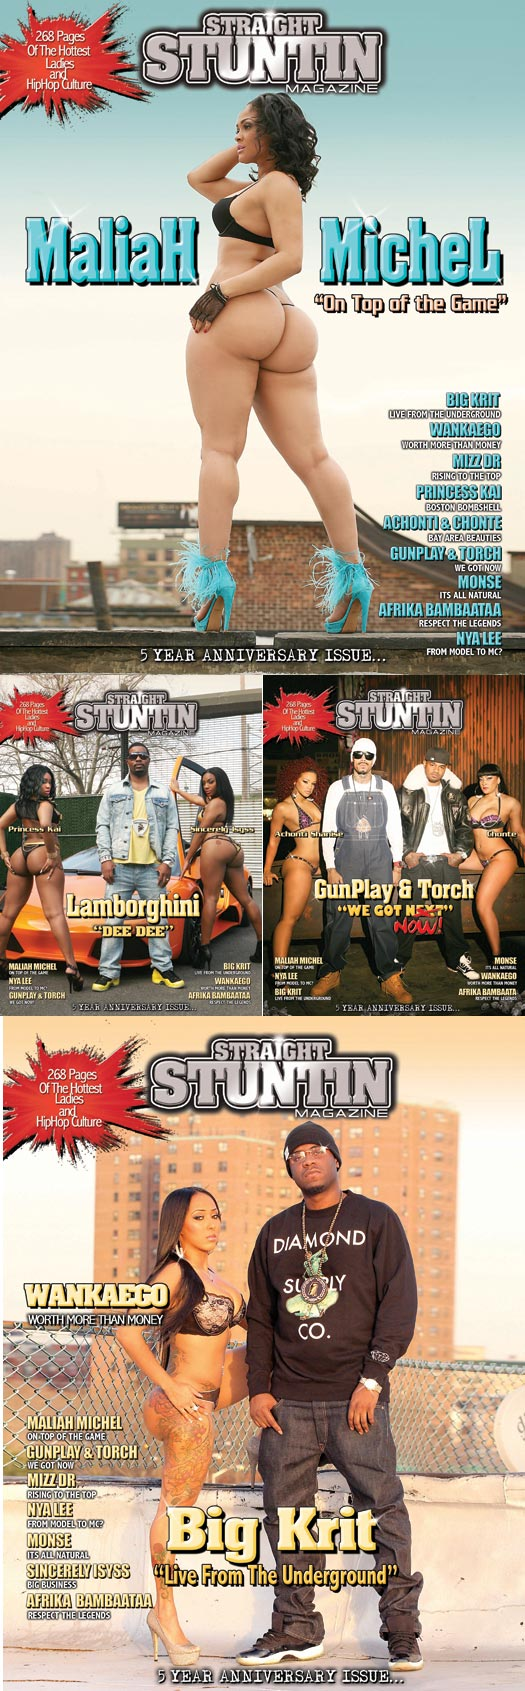 Tamika Carter @MsTamikaCarter in latest issue of Straight Stuntin – TL Glam Studio